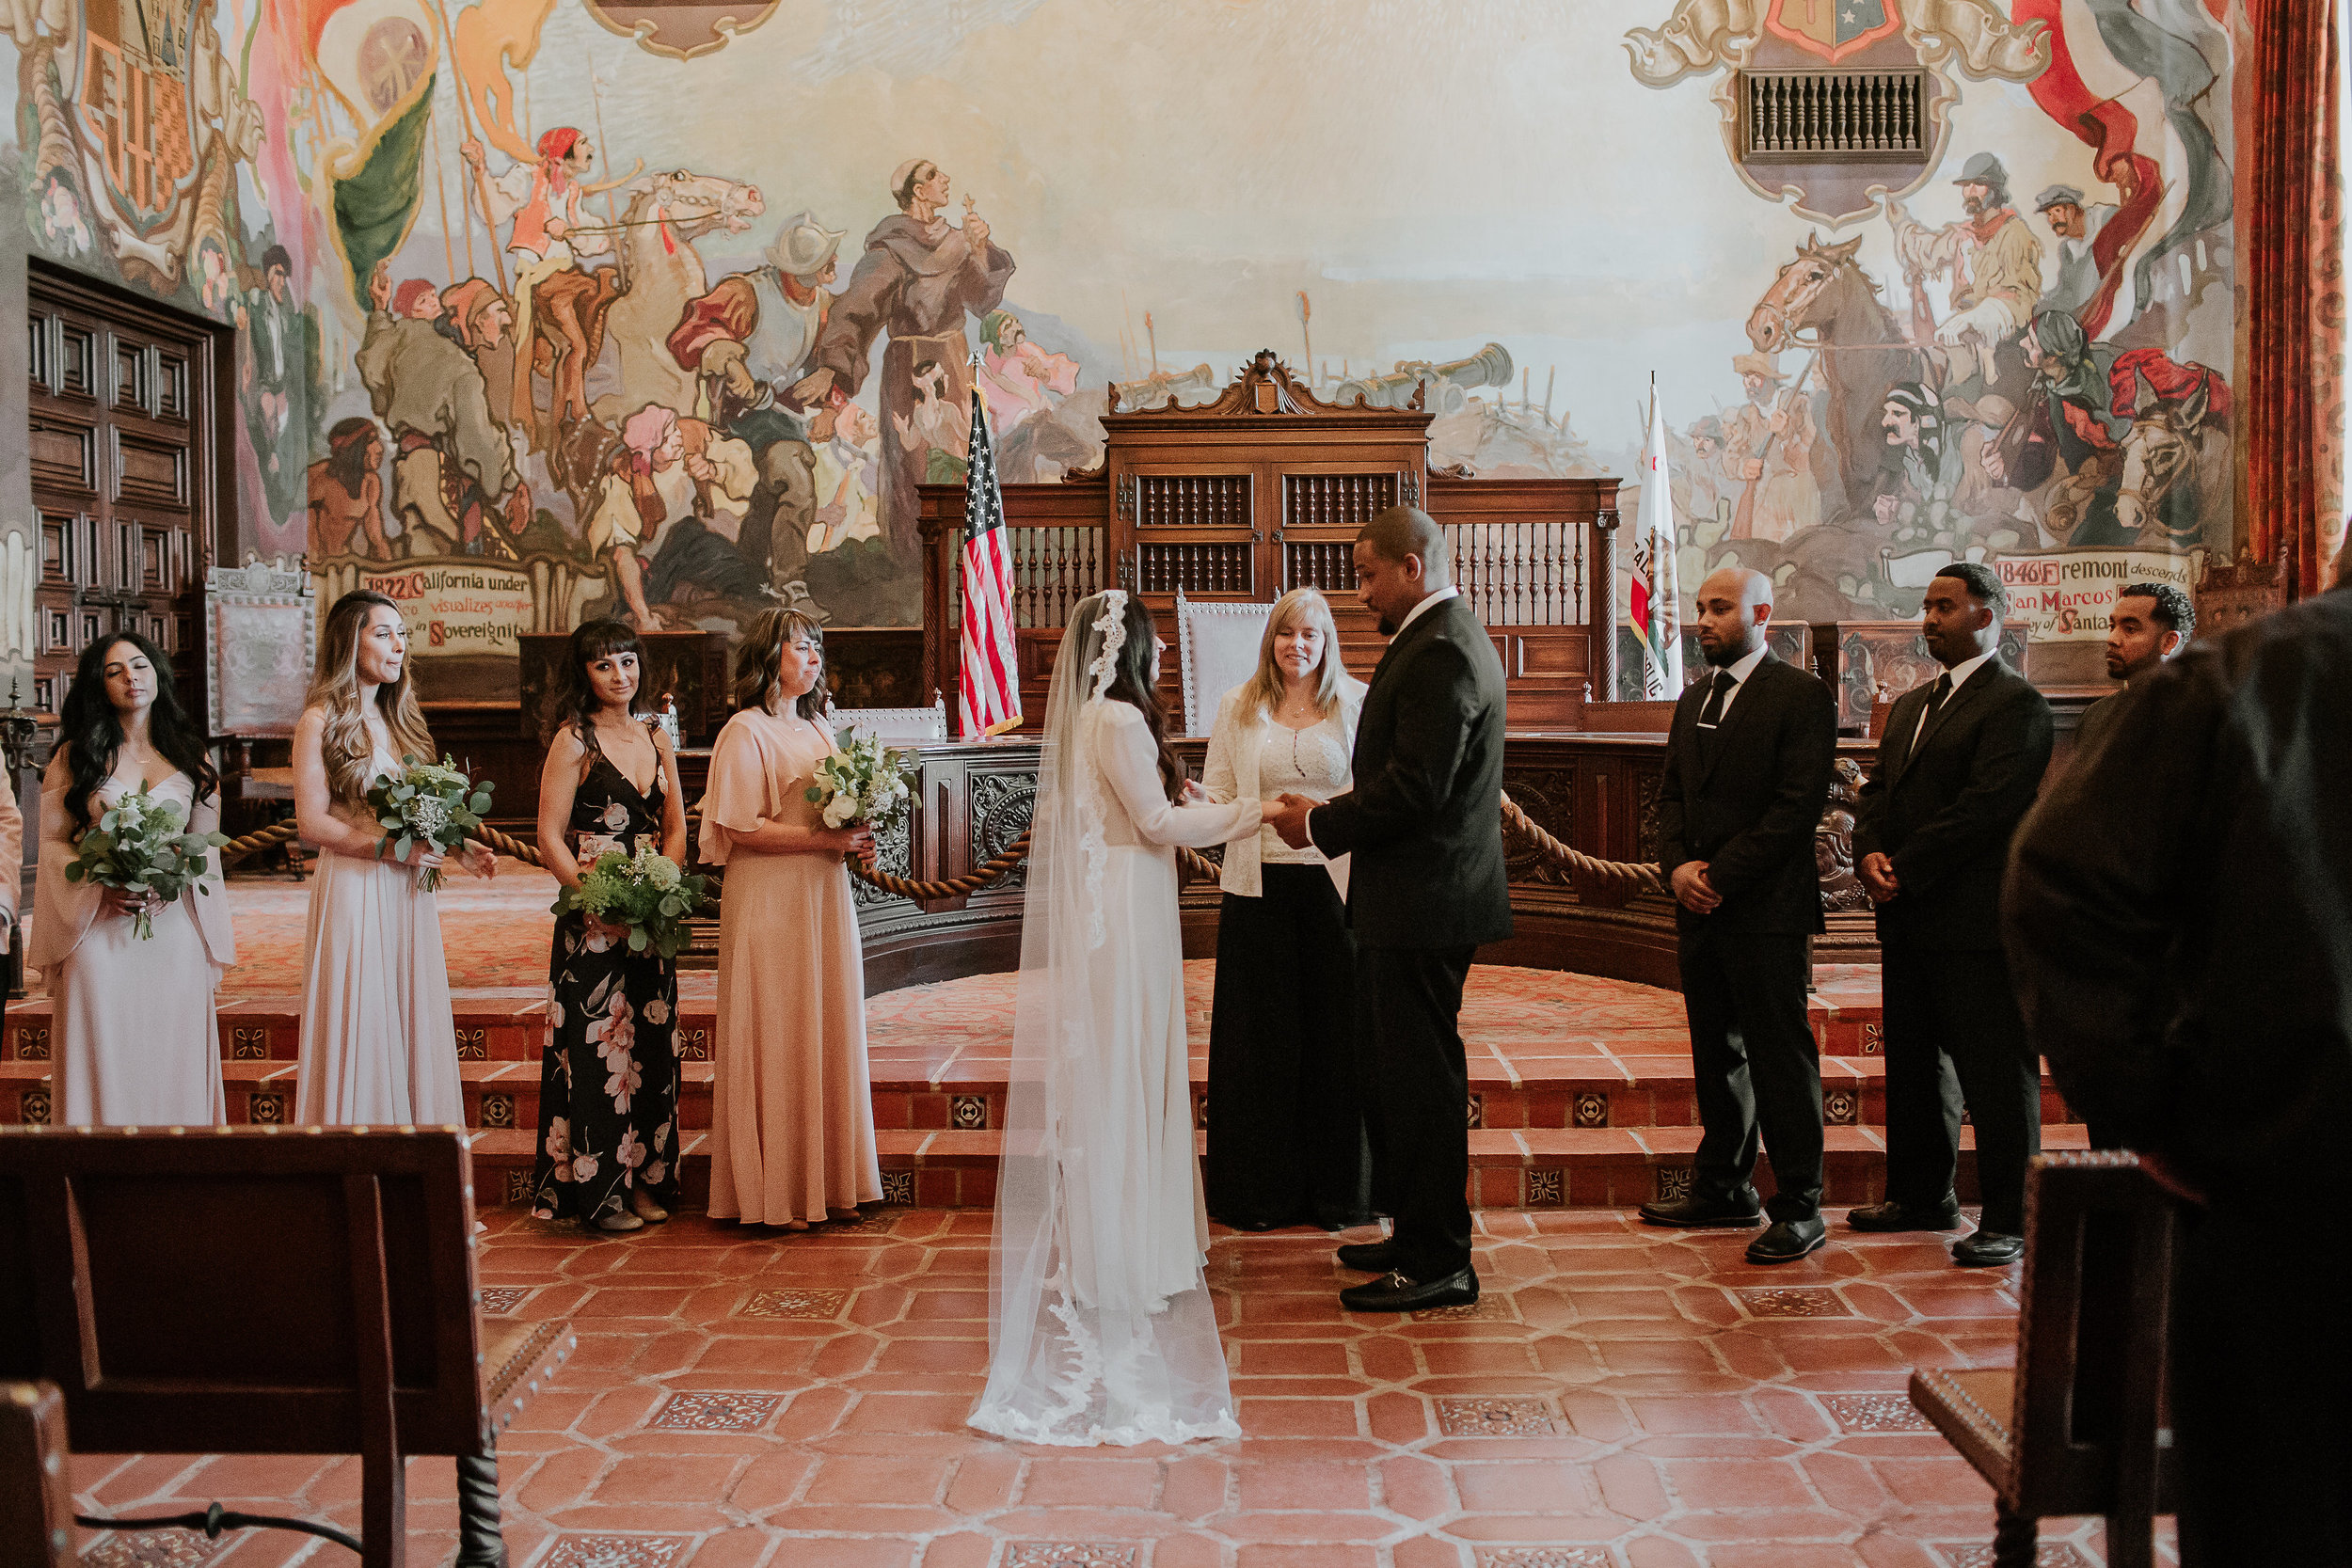 GabrielaandDeJuansantabarbaracourthouseweddingstellamaresweddingelopement-144.jpg